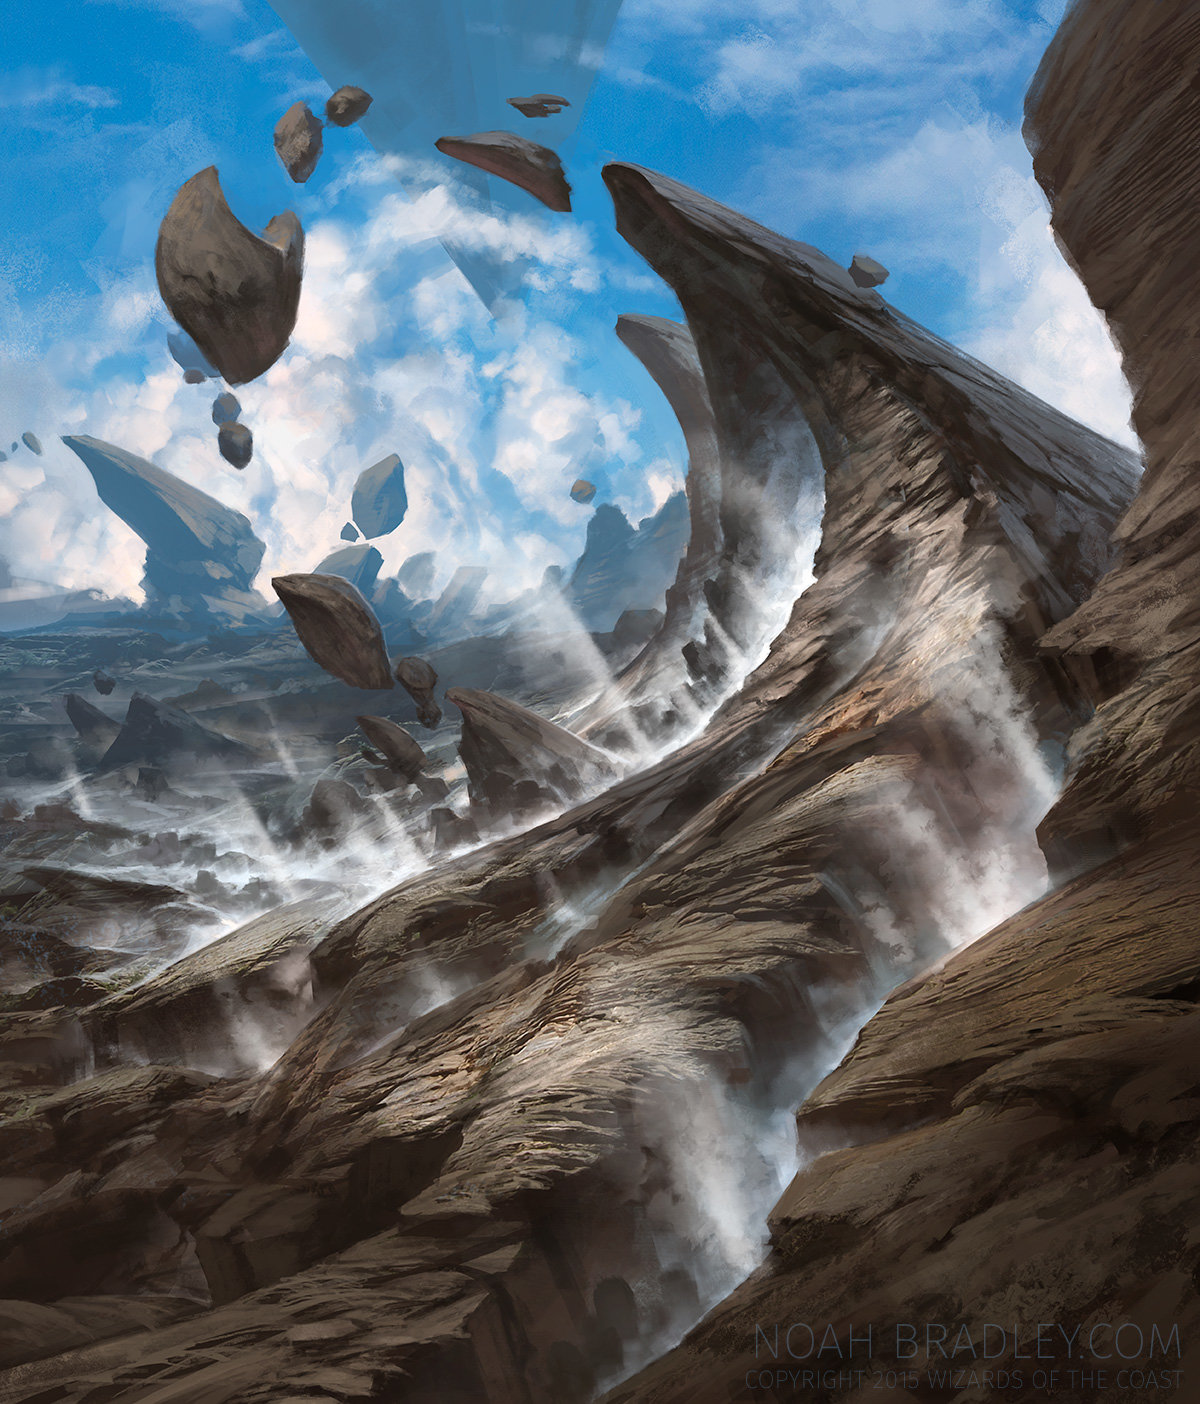 Noah Bradley Digital Painting Illustration Steam Vents